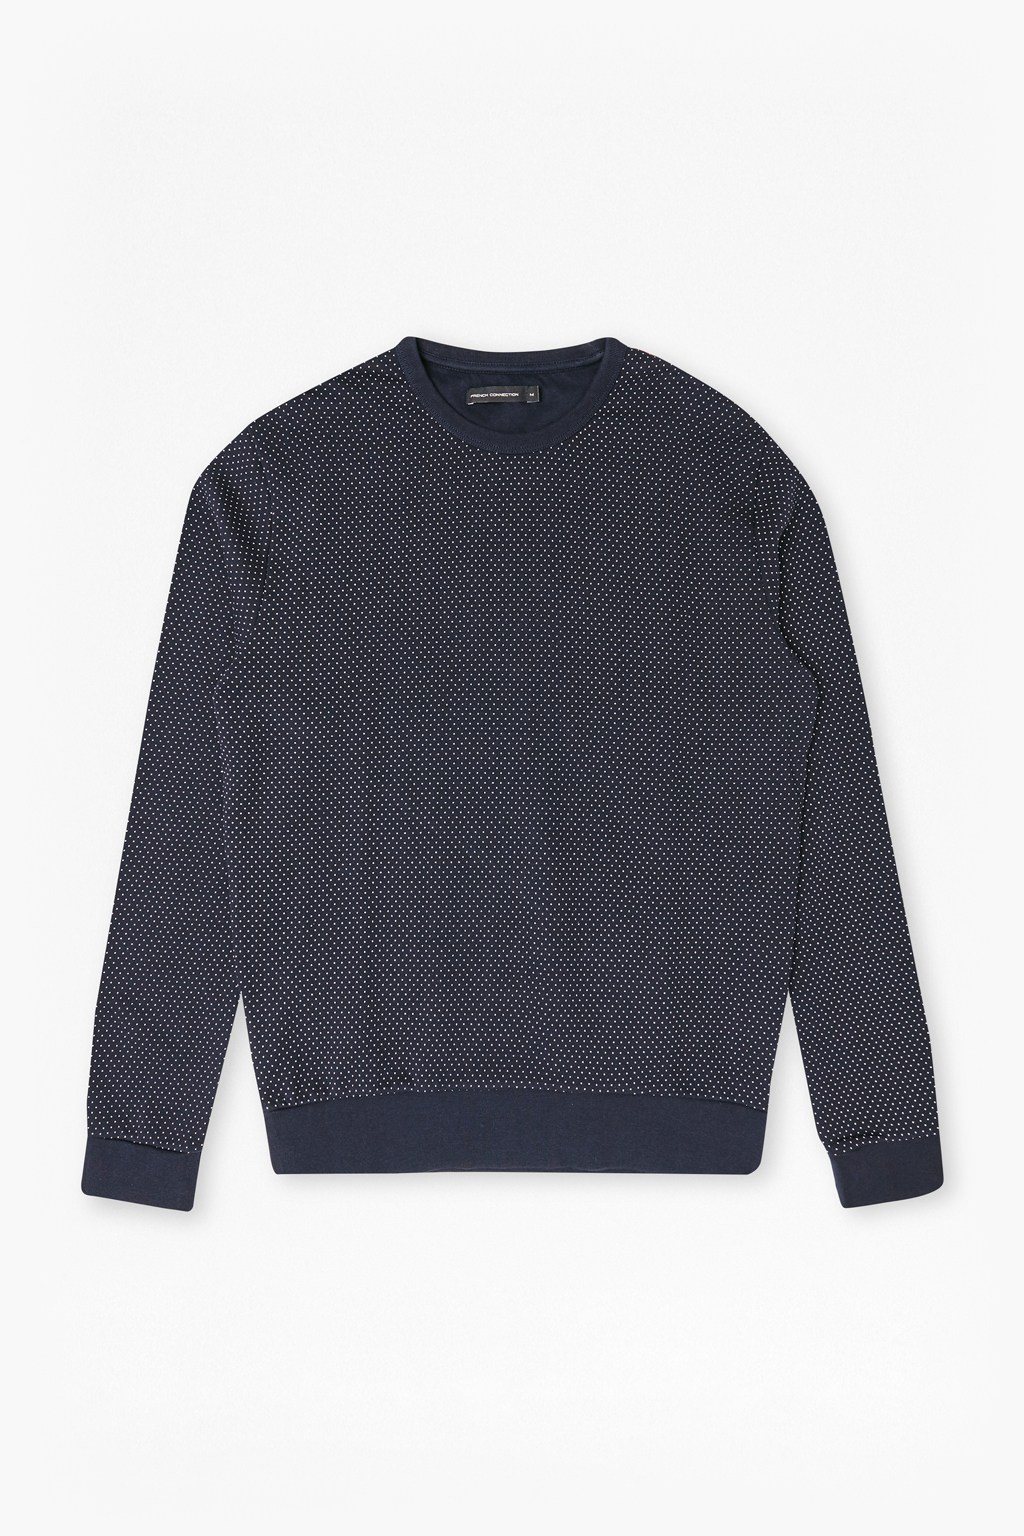 Dunite Dot Sweatshirt